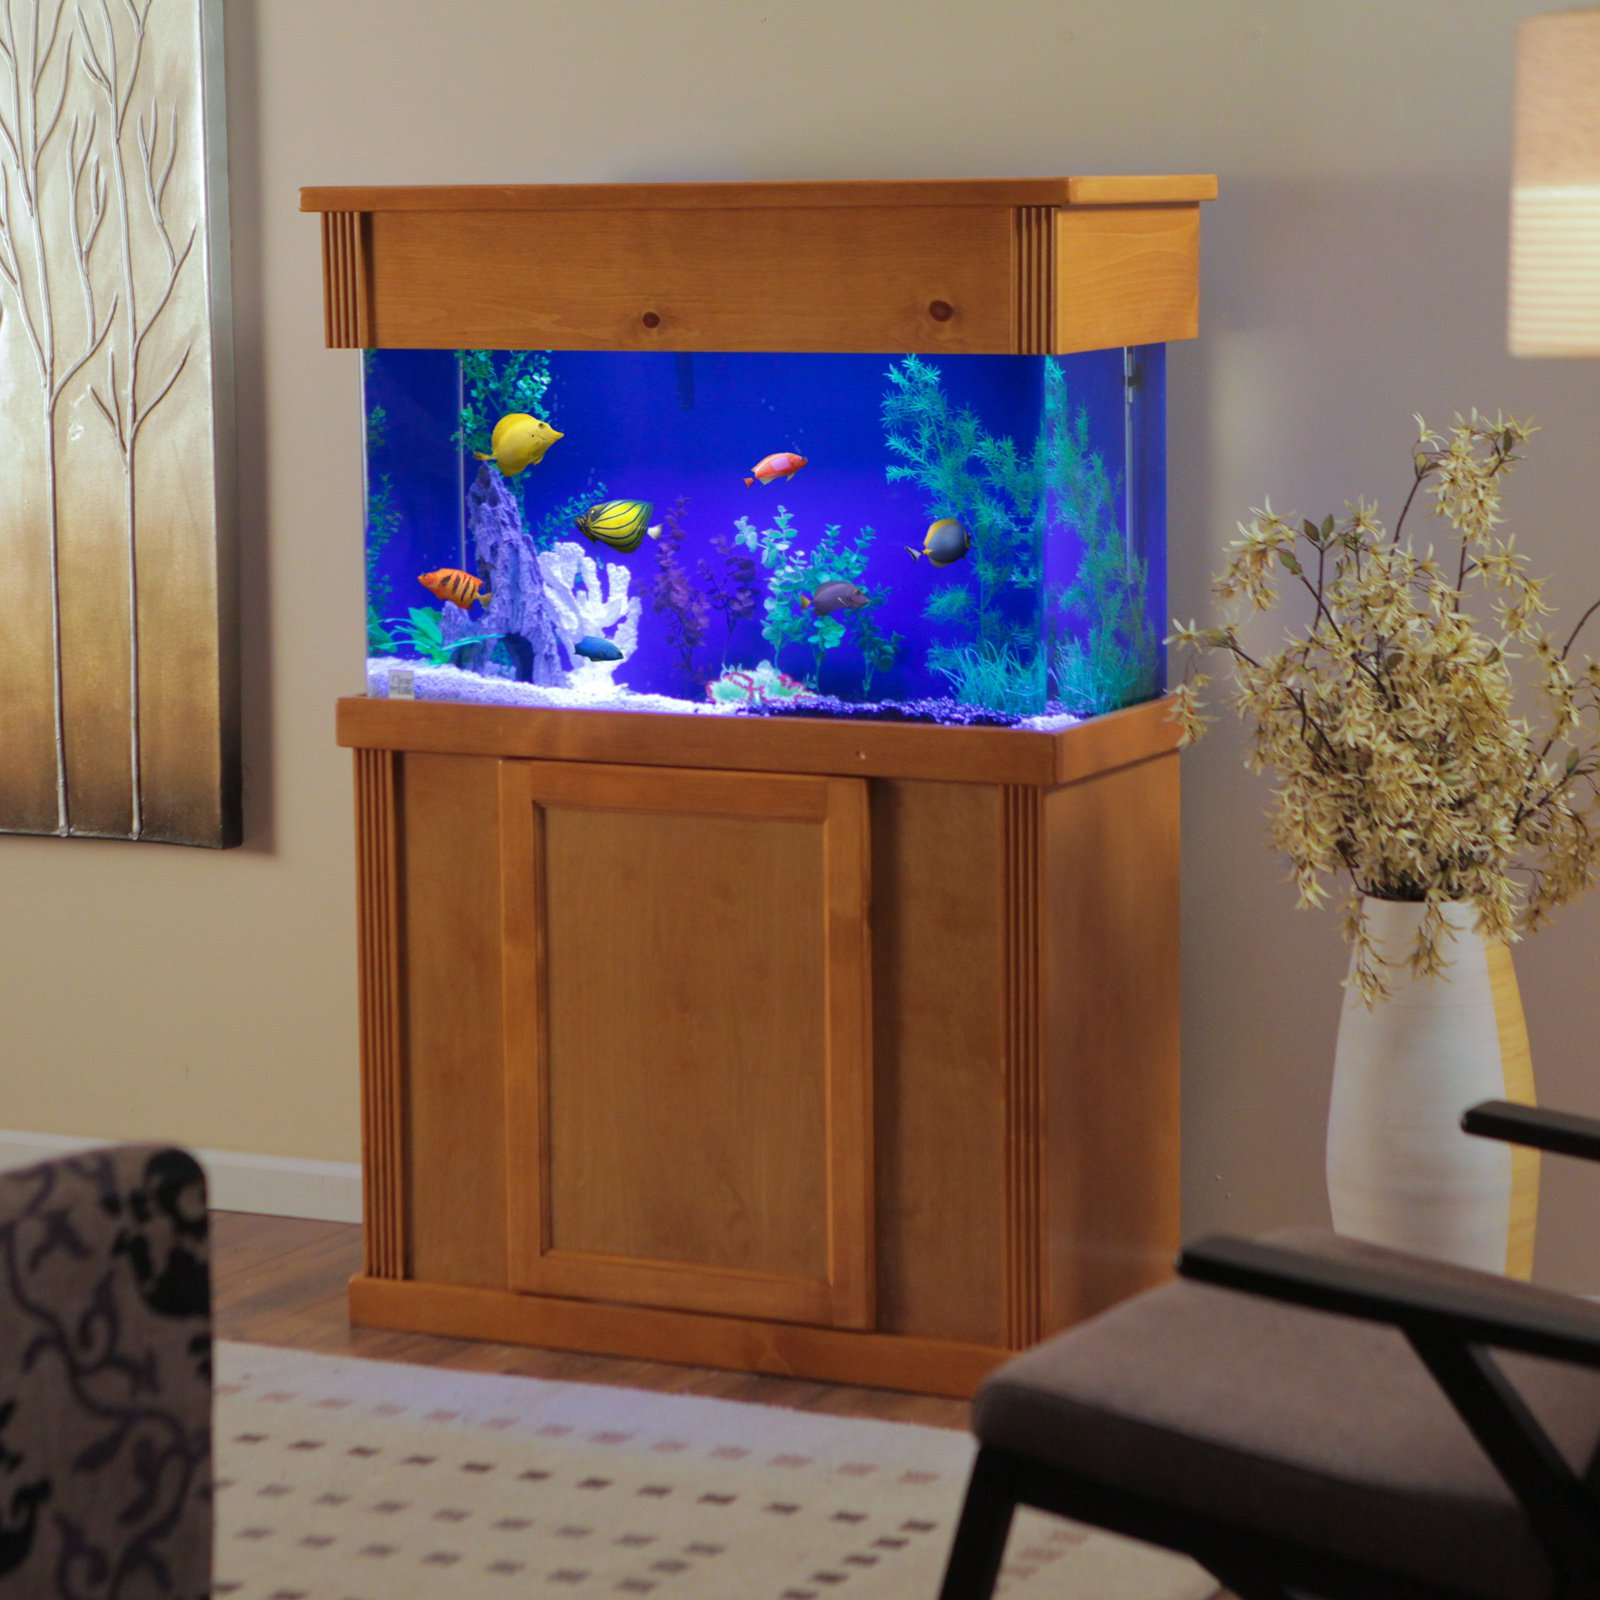 Laguna Series Rectangular Wood Aquarium Stand with Optional Canopy - Walmart.com & Laguna Series Rectangular Wood Aquarium Stand with Optional Canopy ...